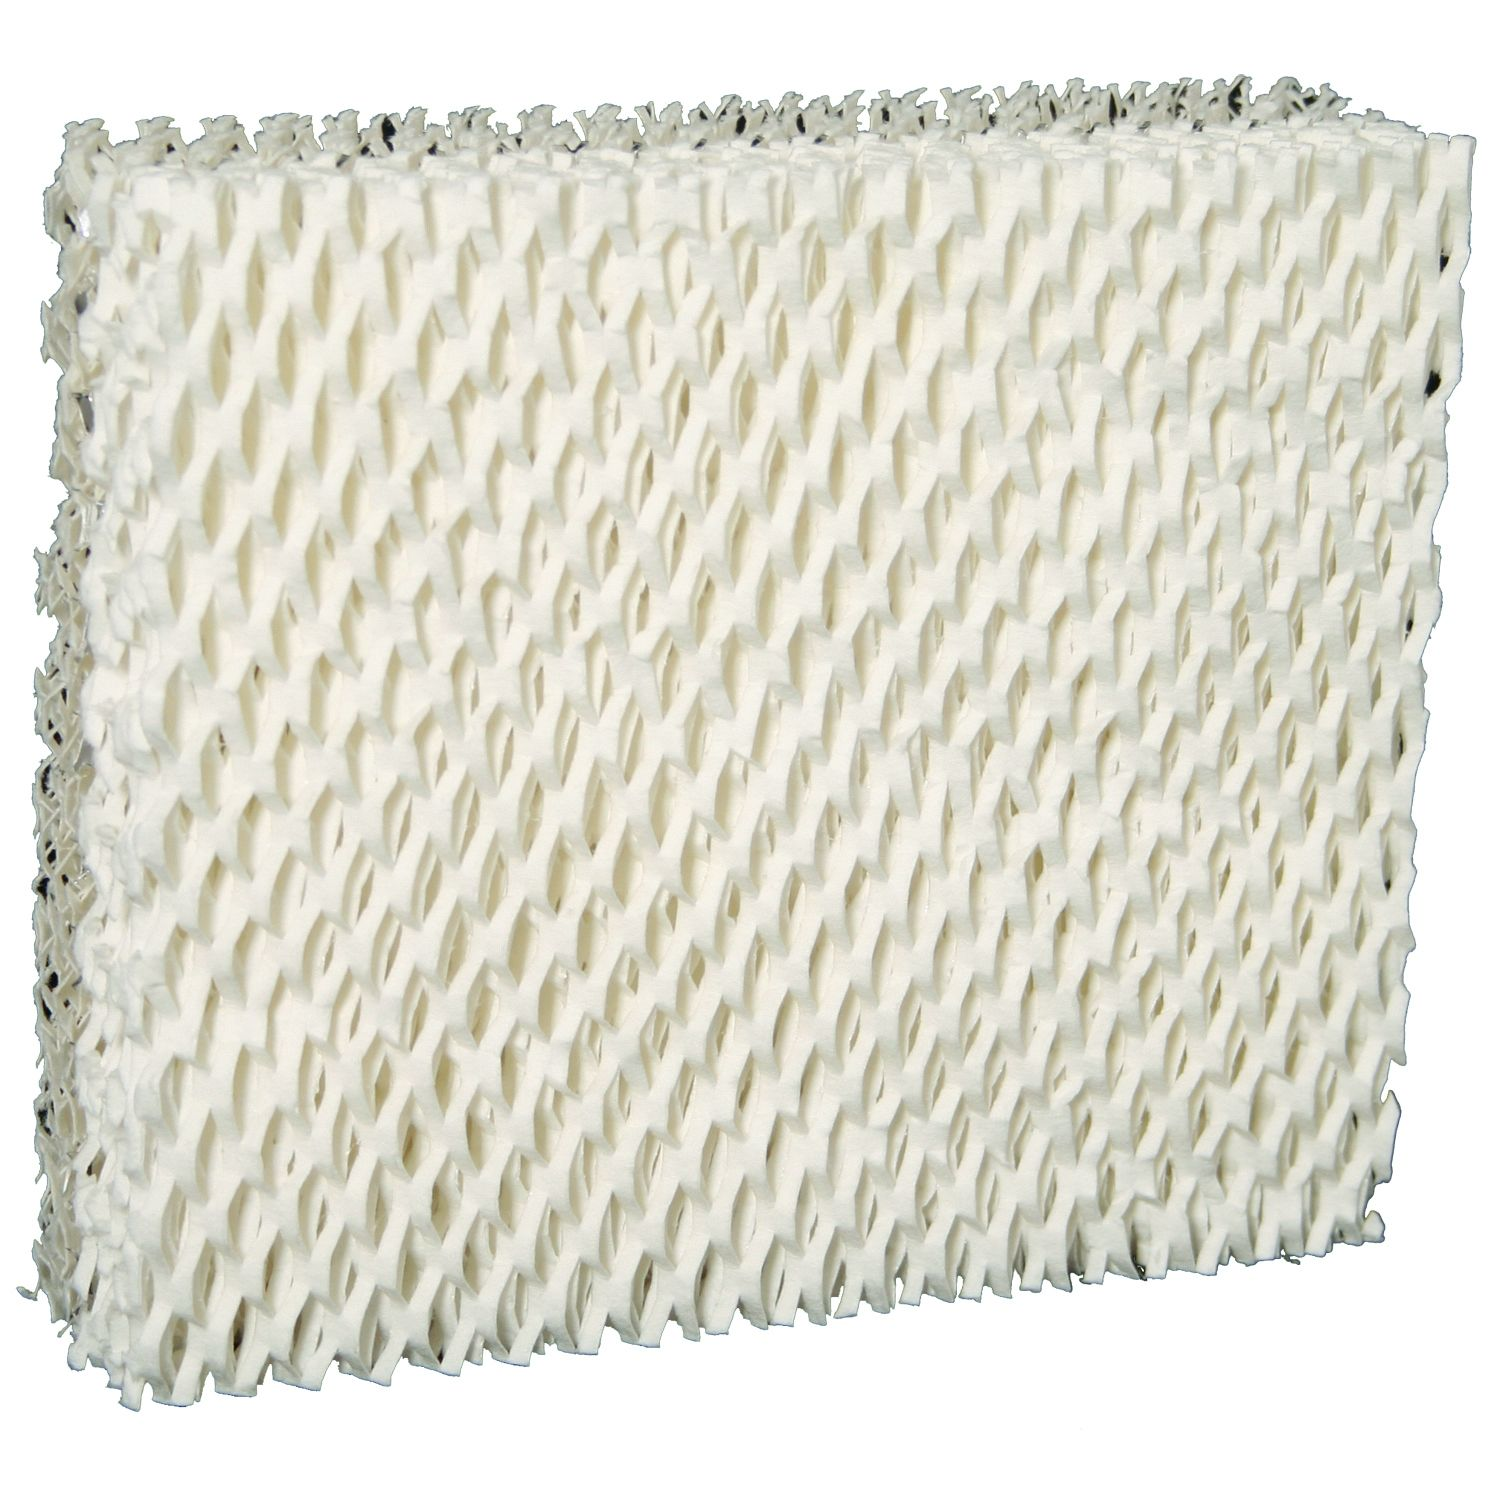 BESTAIR Humidi-WICK Humidifier Filter D09-C